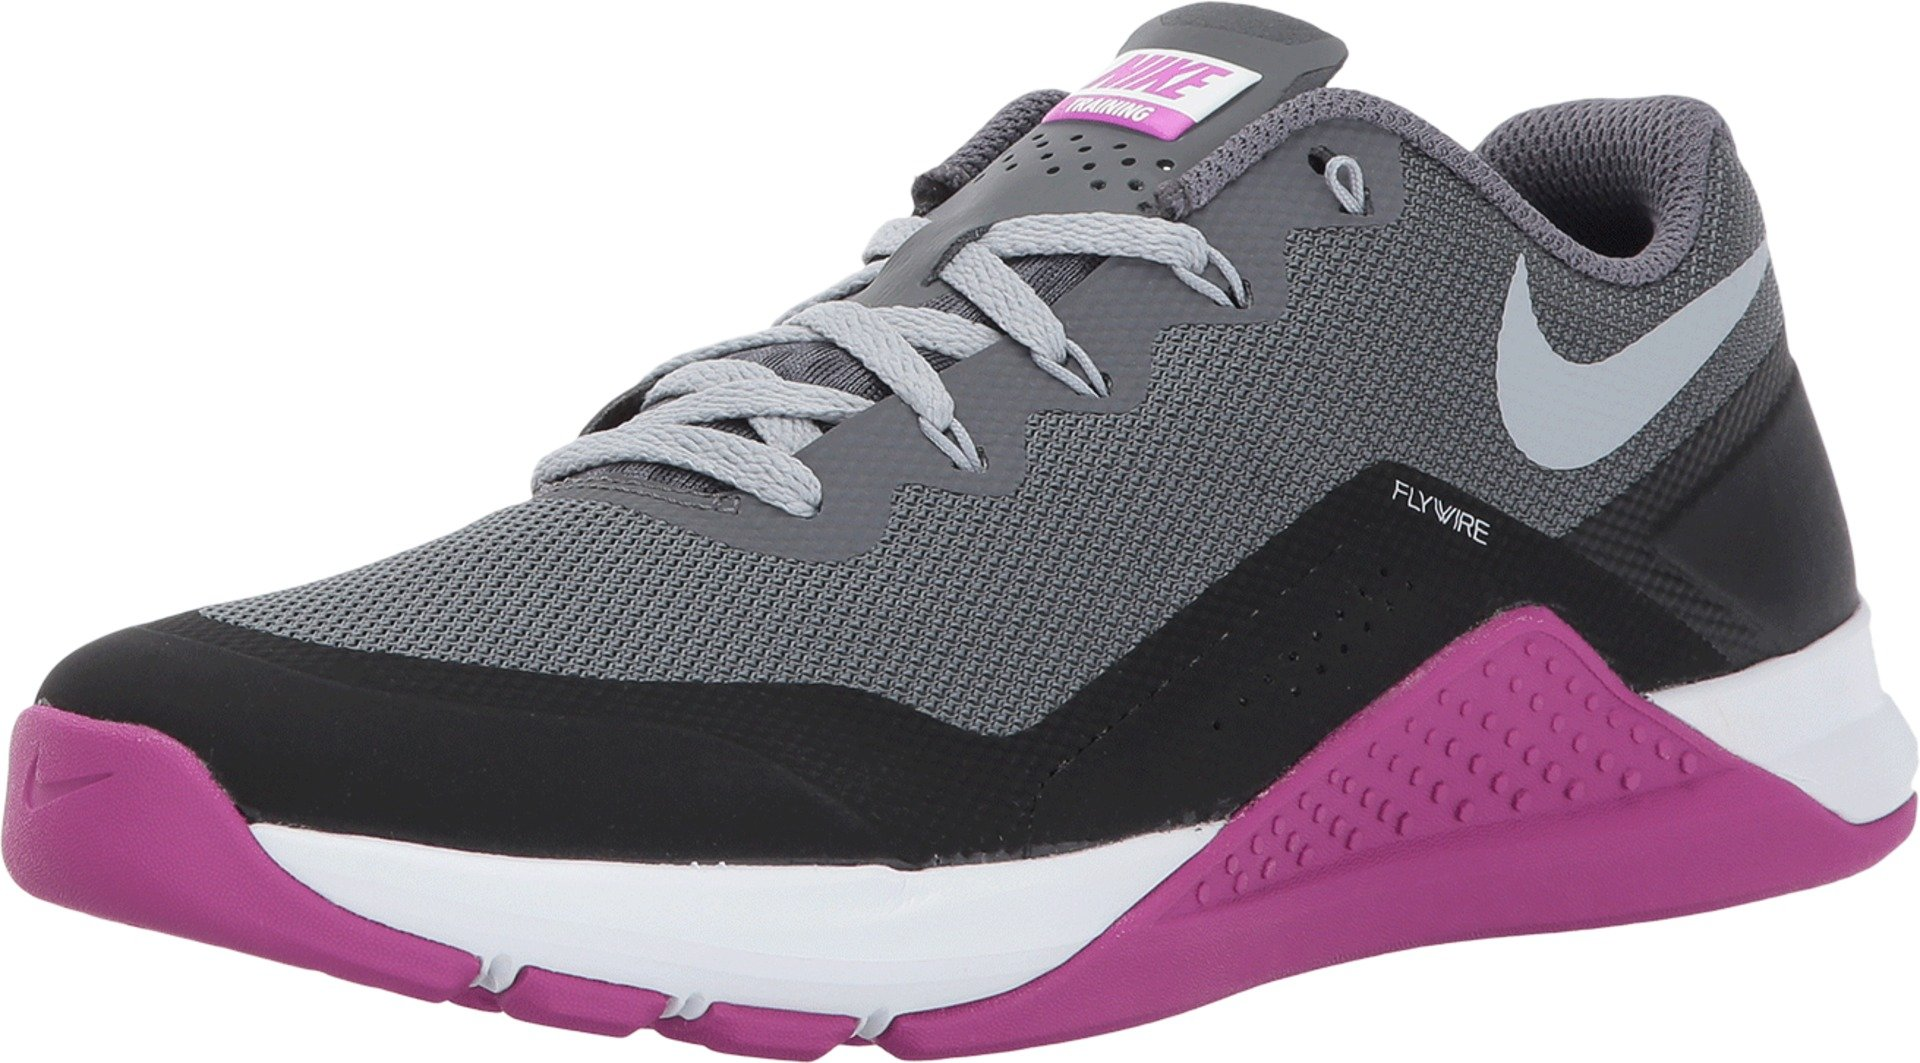 e949bedb205b1d Galleon - Nike Women's Metcon Repper DSX Cross Trainer (7 B(M) US)